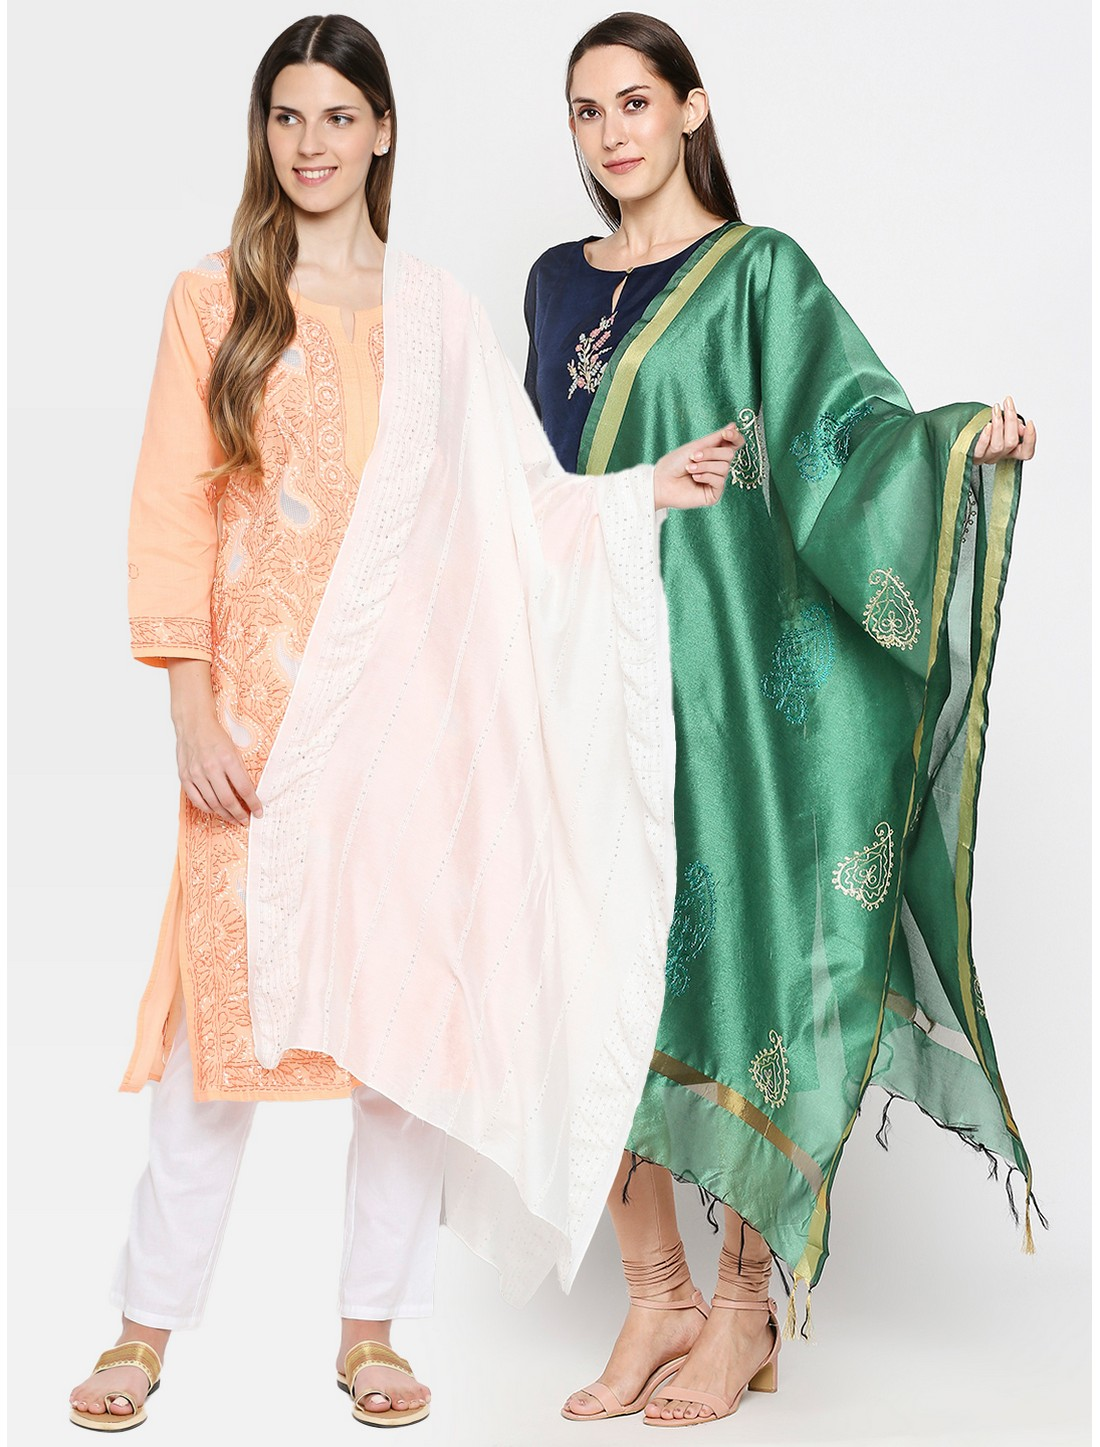 Get Wrapped | Get Wrapped Dyeable Dupatta & a Gold Border Dupatta for Women - Combo Pack of 2